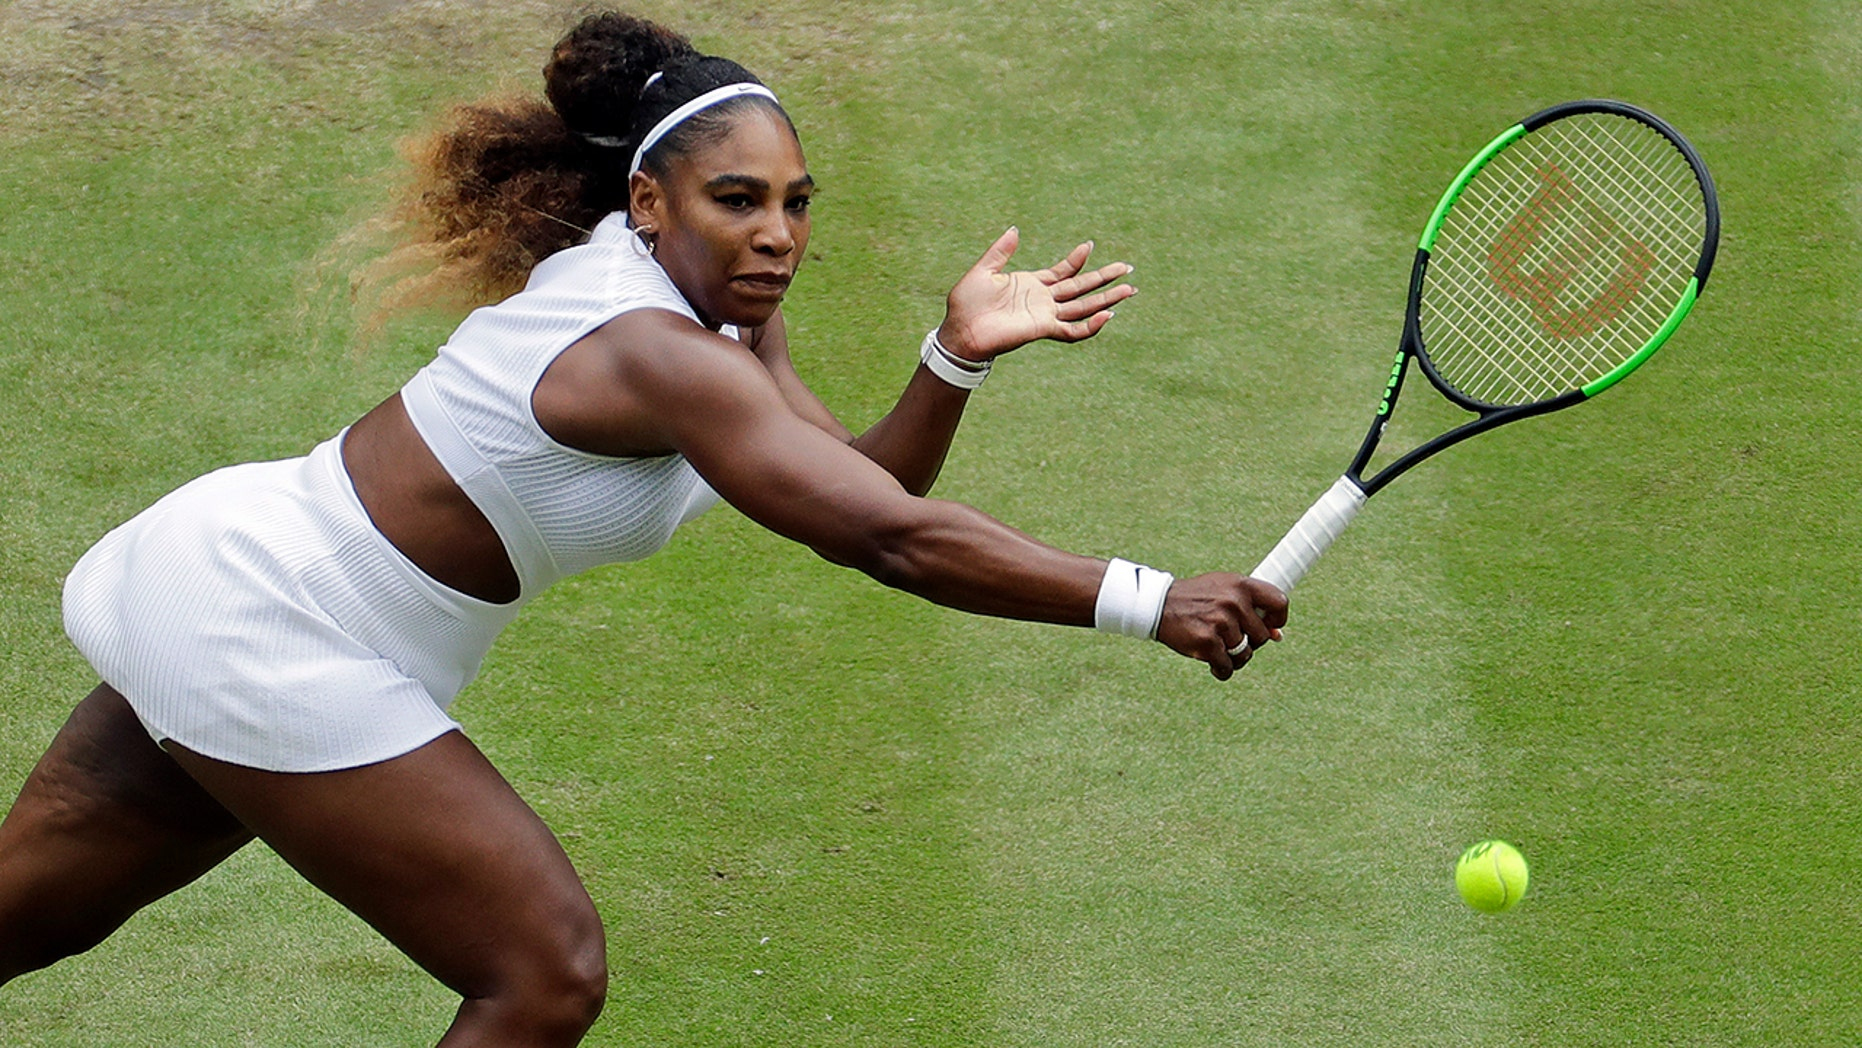 United States' Serena Williams returns to United States' Alison Riske in a Women's quarterfinal singles match on day eight of the Wimbledon Tennis Championships in London, Tuesday, July 9, 2019. (AP Photo/Ben Curtis)